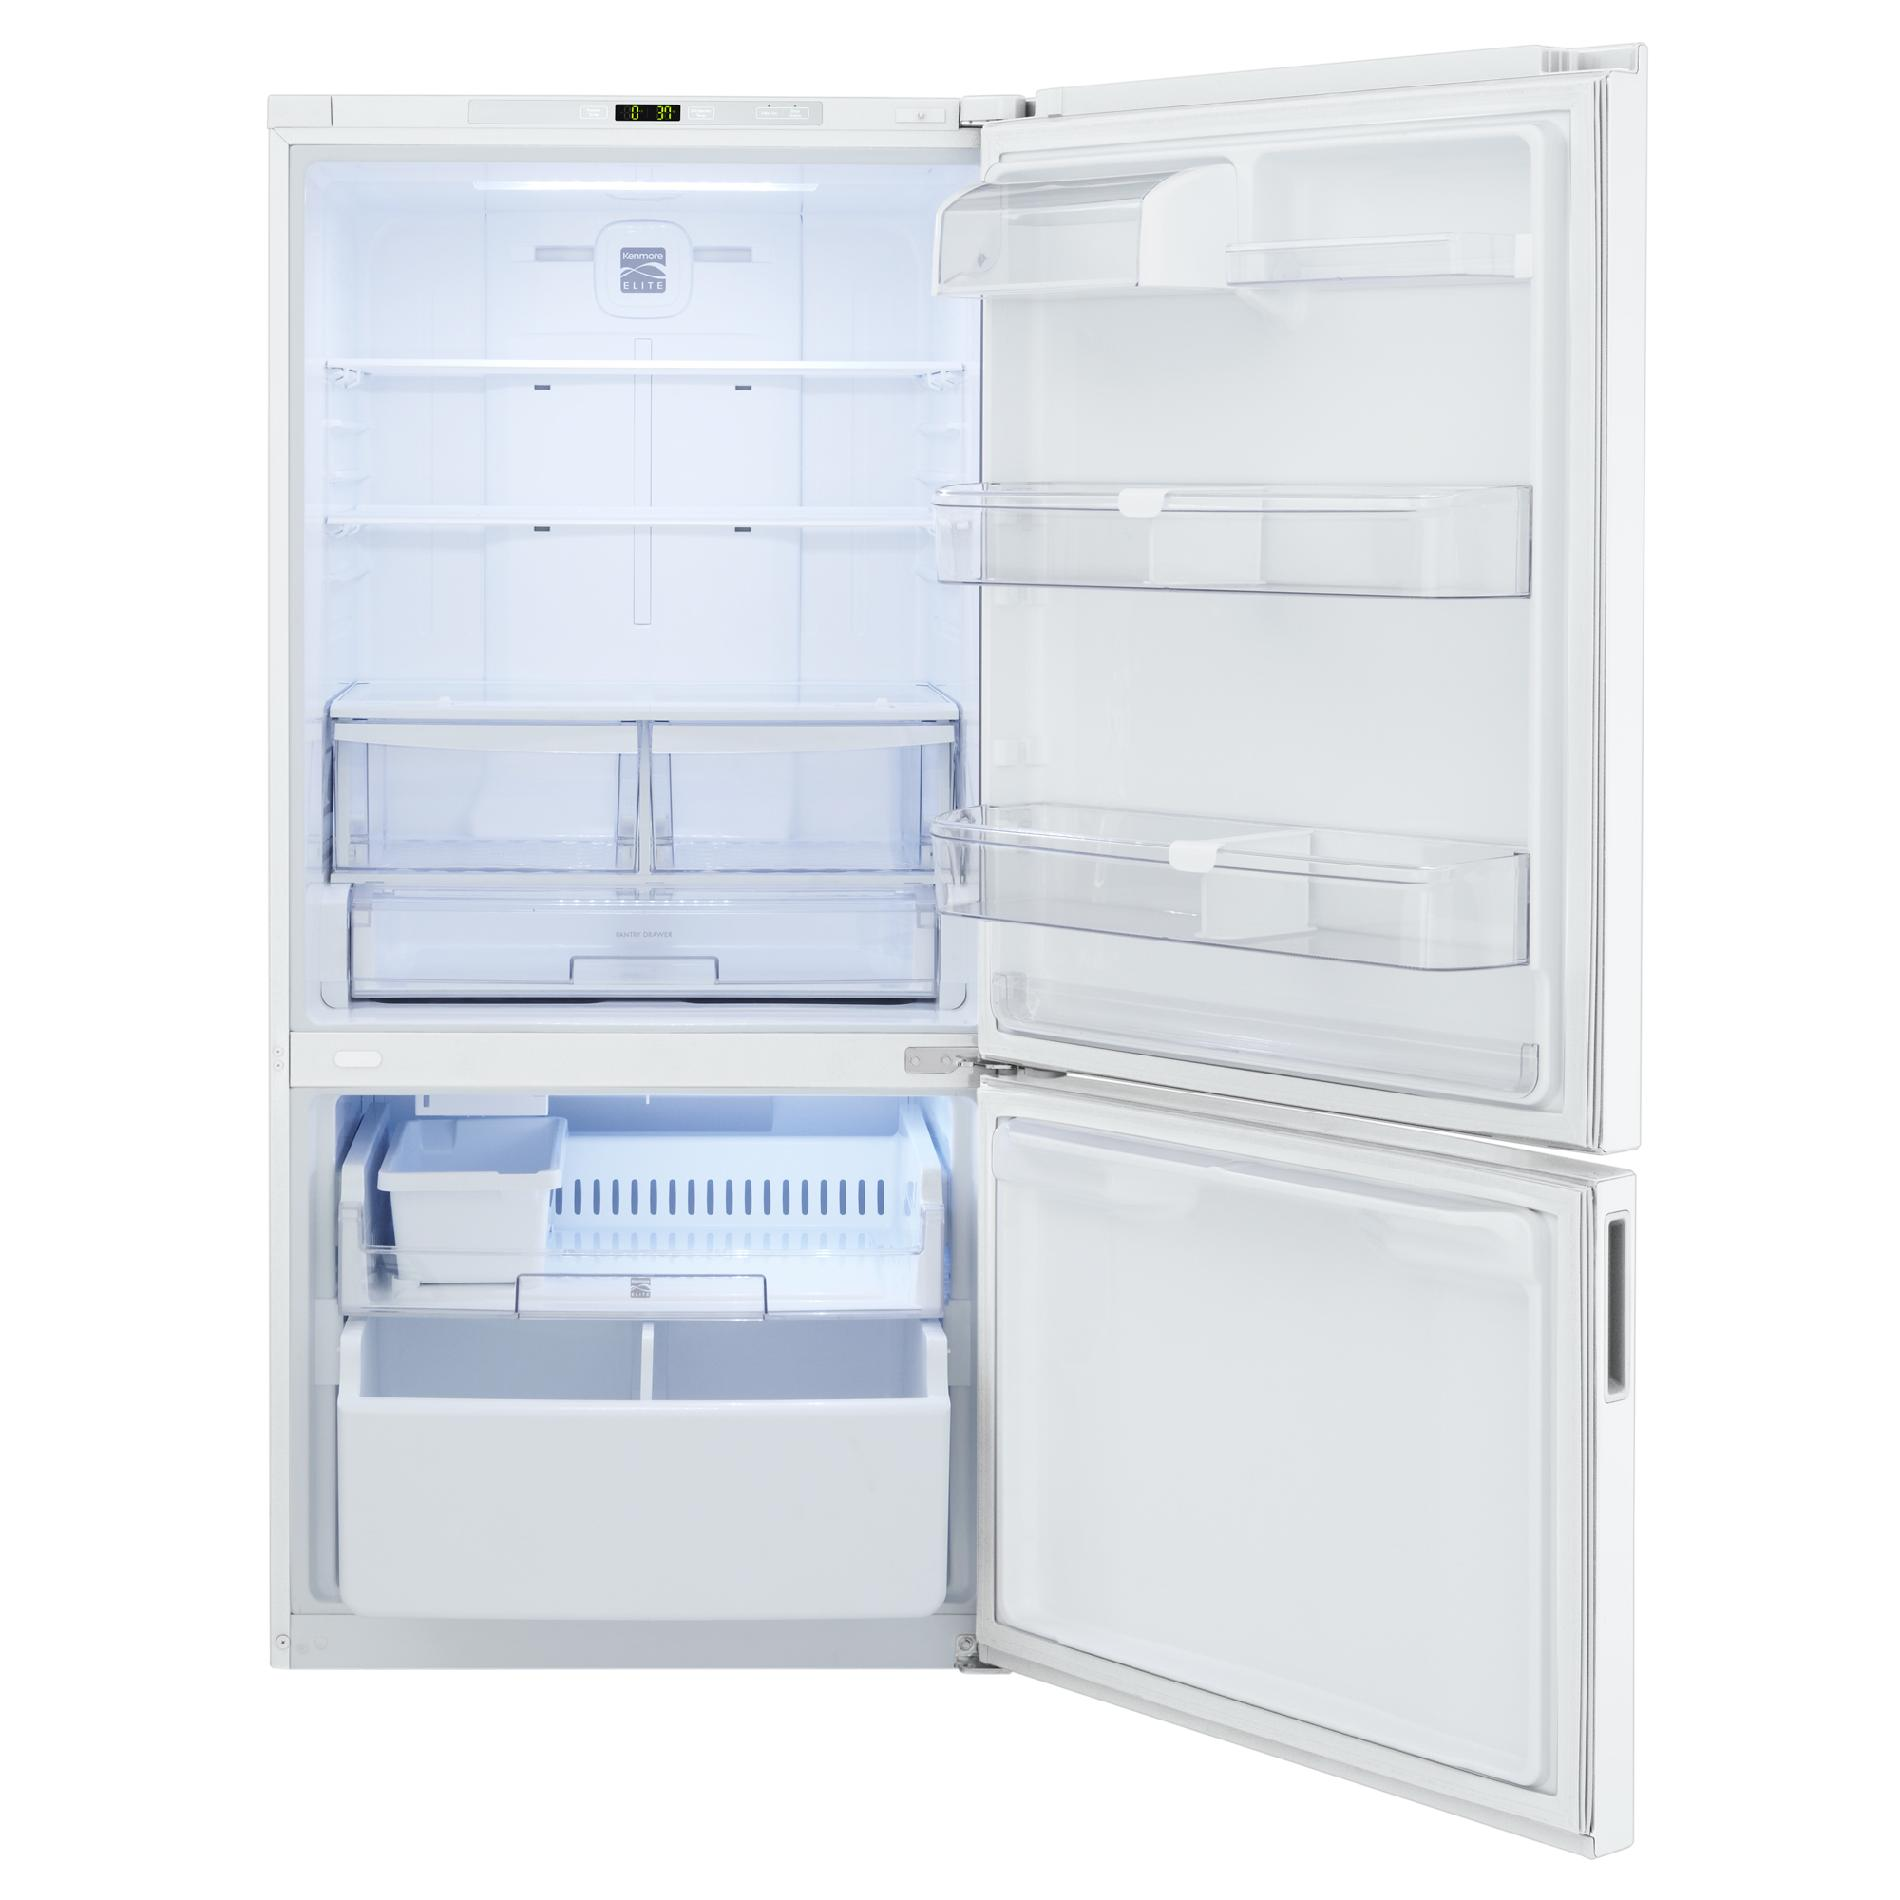 Kenmore Elite 24.1 cu. ft. Bottom-Freezer Refrigerator - White